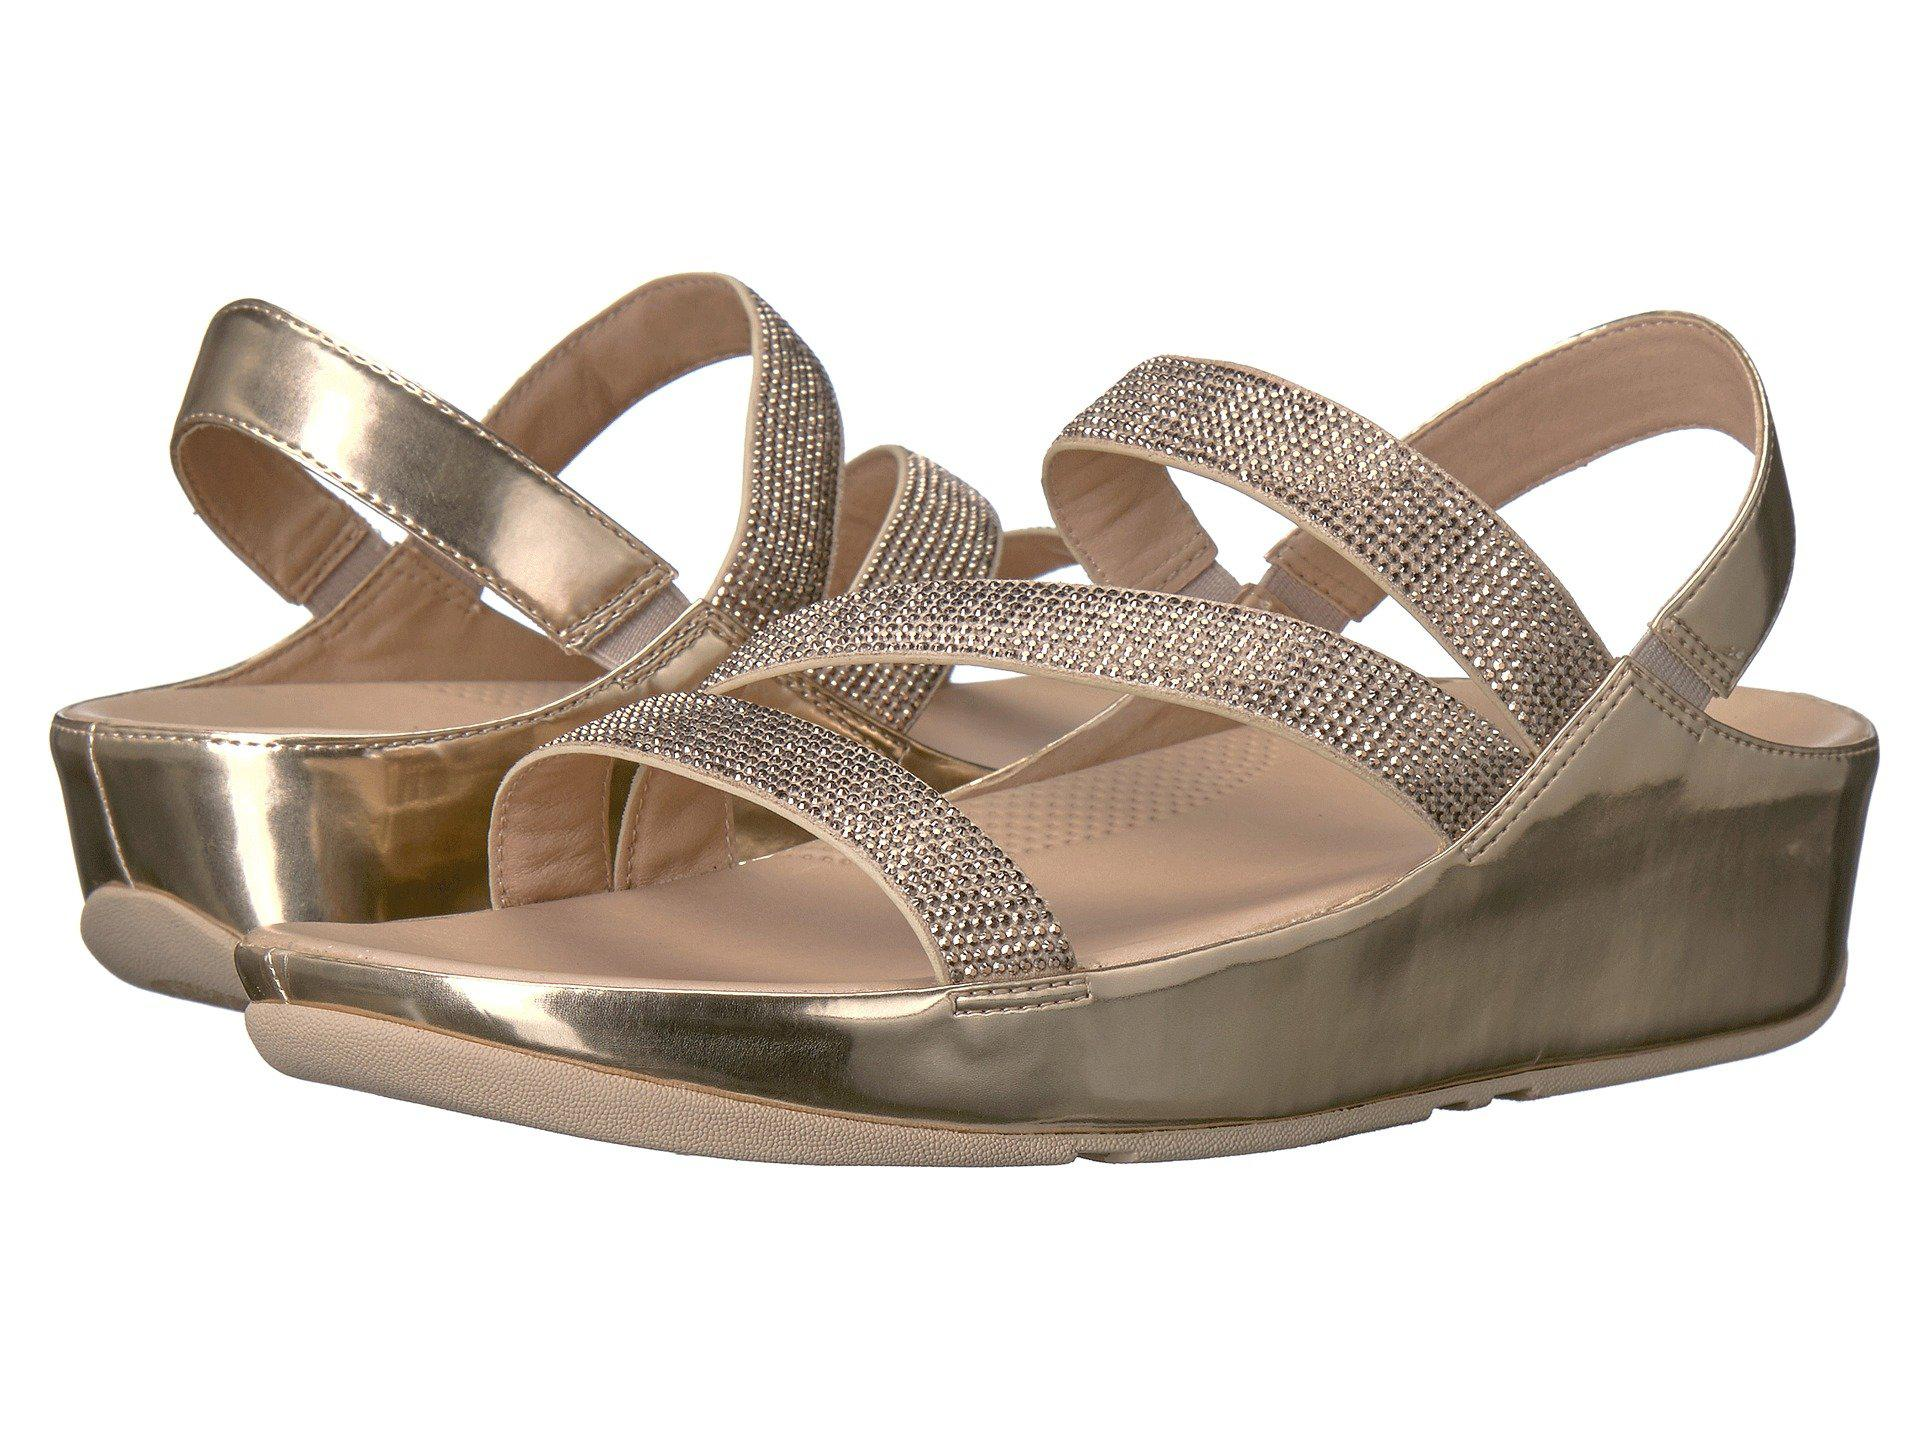 198e5d1db50c62 Lyst - Fitflop Crystall Z-strap Sandal